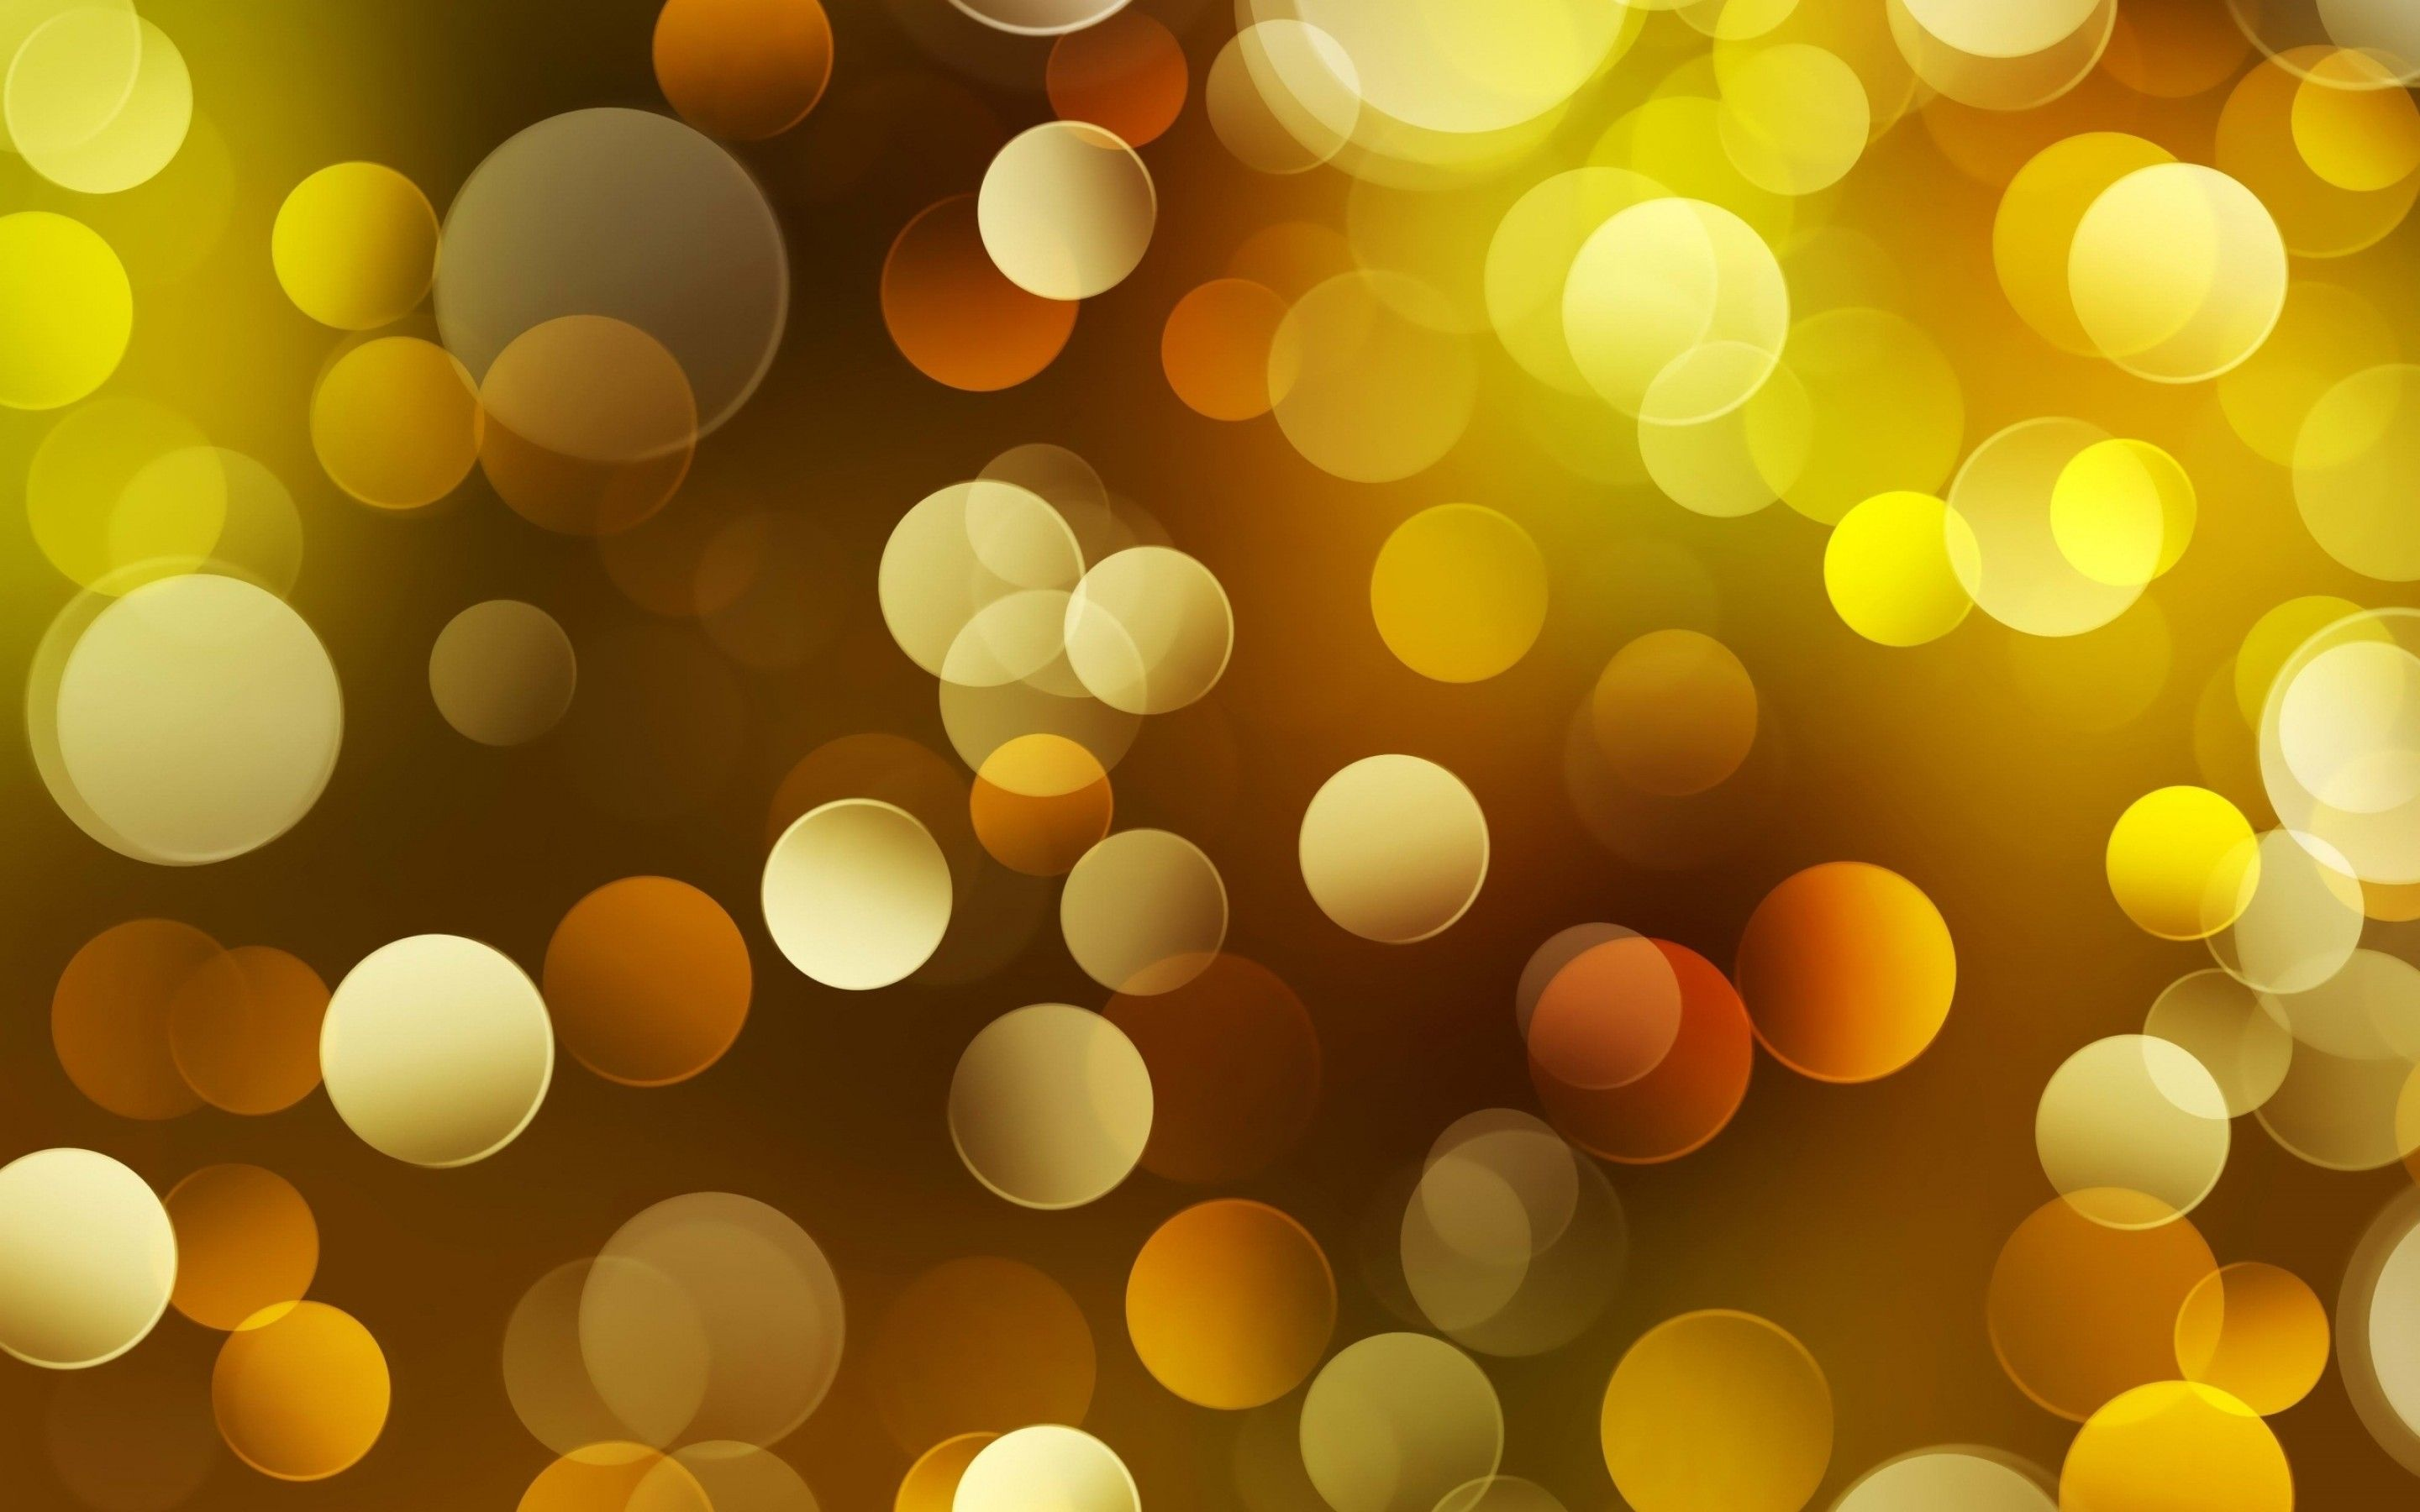 Yellow Abstract Backgrounds Widescreen 16 9 Widescreen 5 3 Hdtv